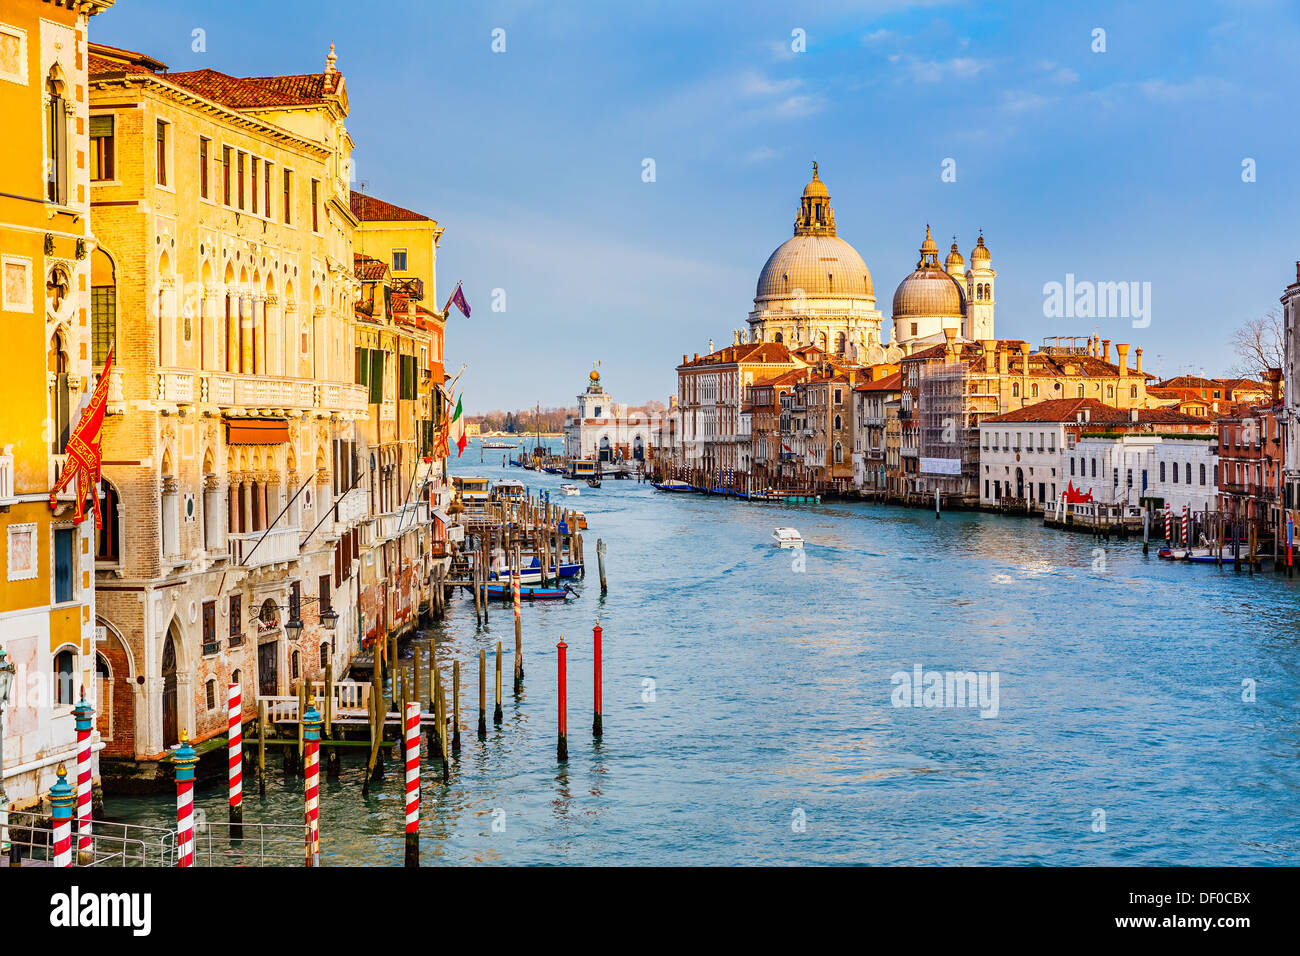 Grand Canal at sunset - Stock Image